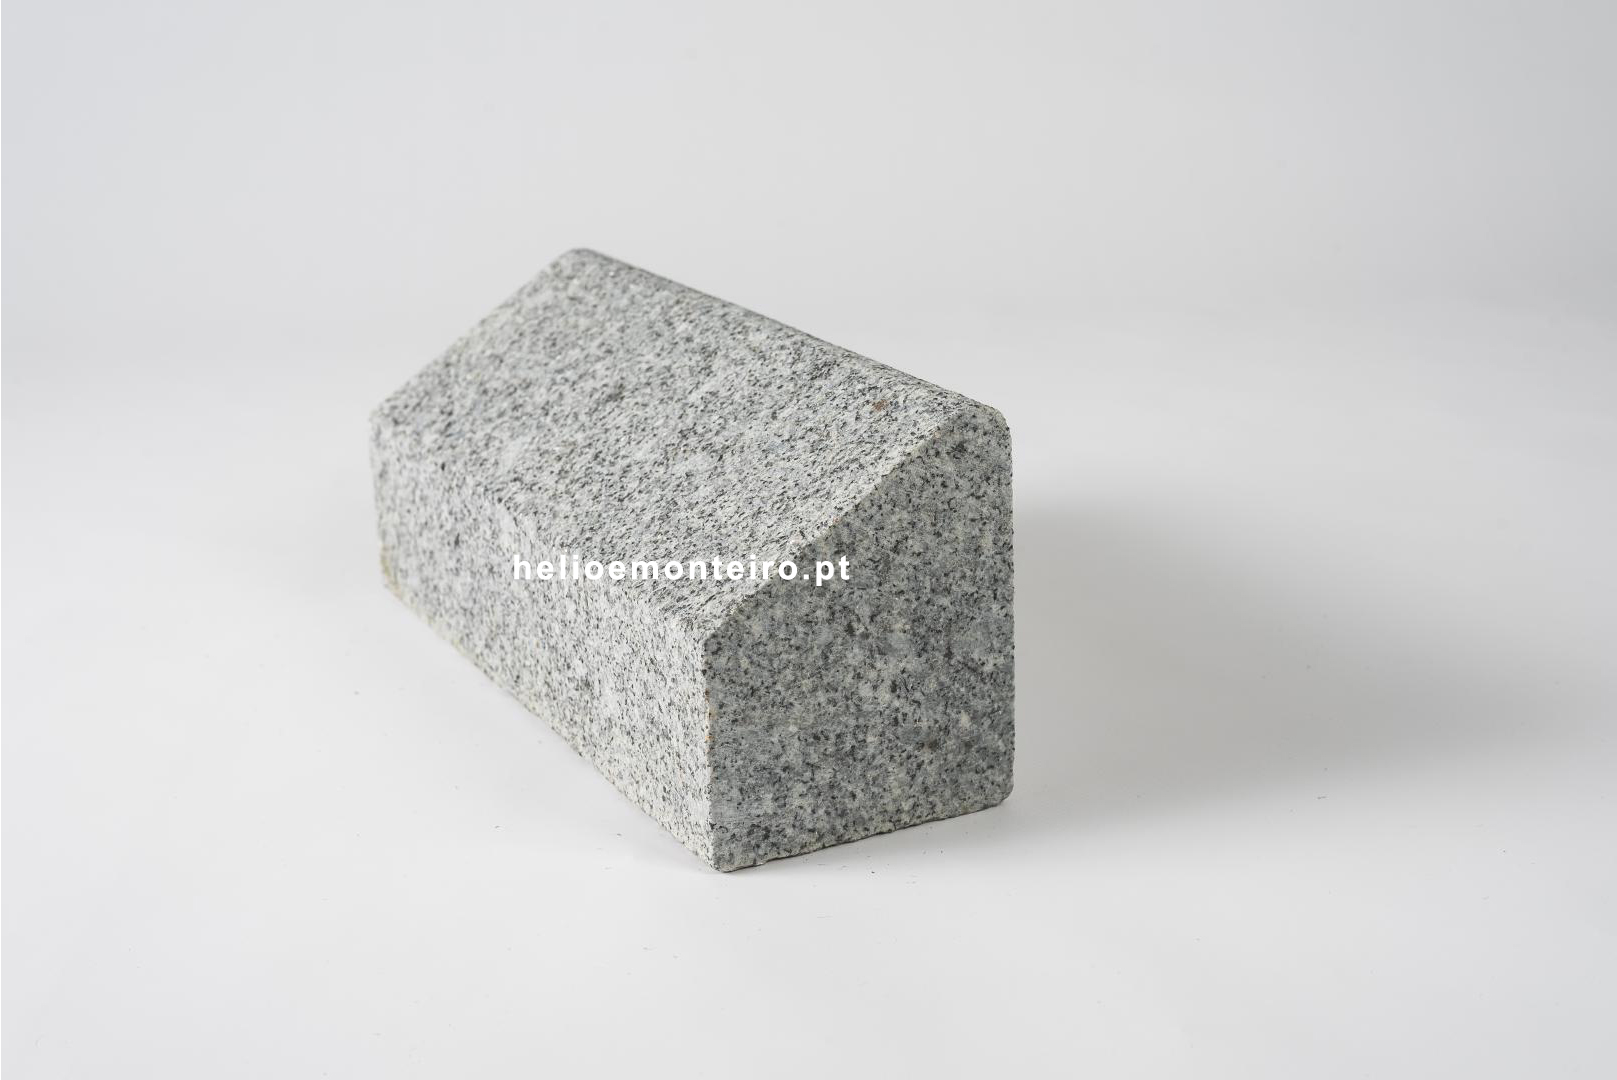 Kerb-granite-gray-with-gaive-and-fillet-finish-flamed-helio-monteiro-5257